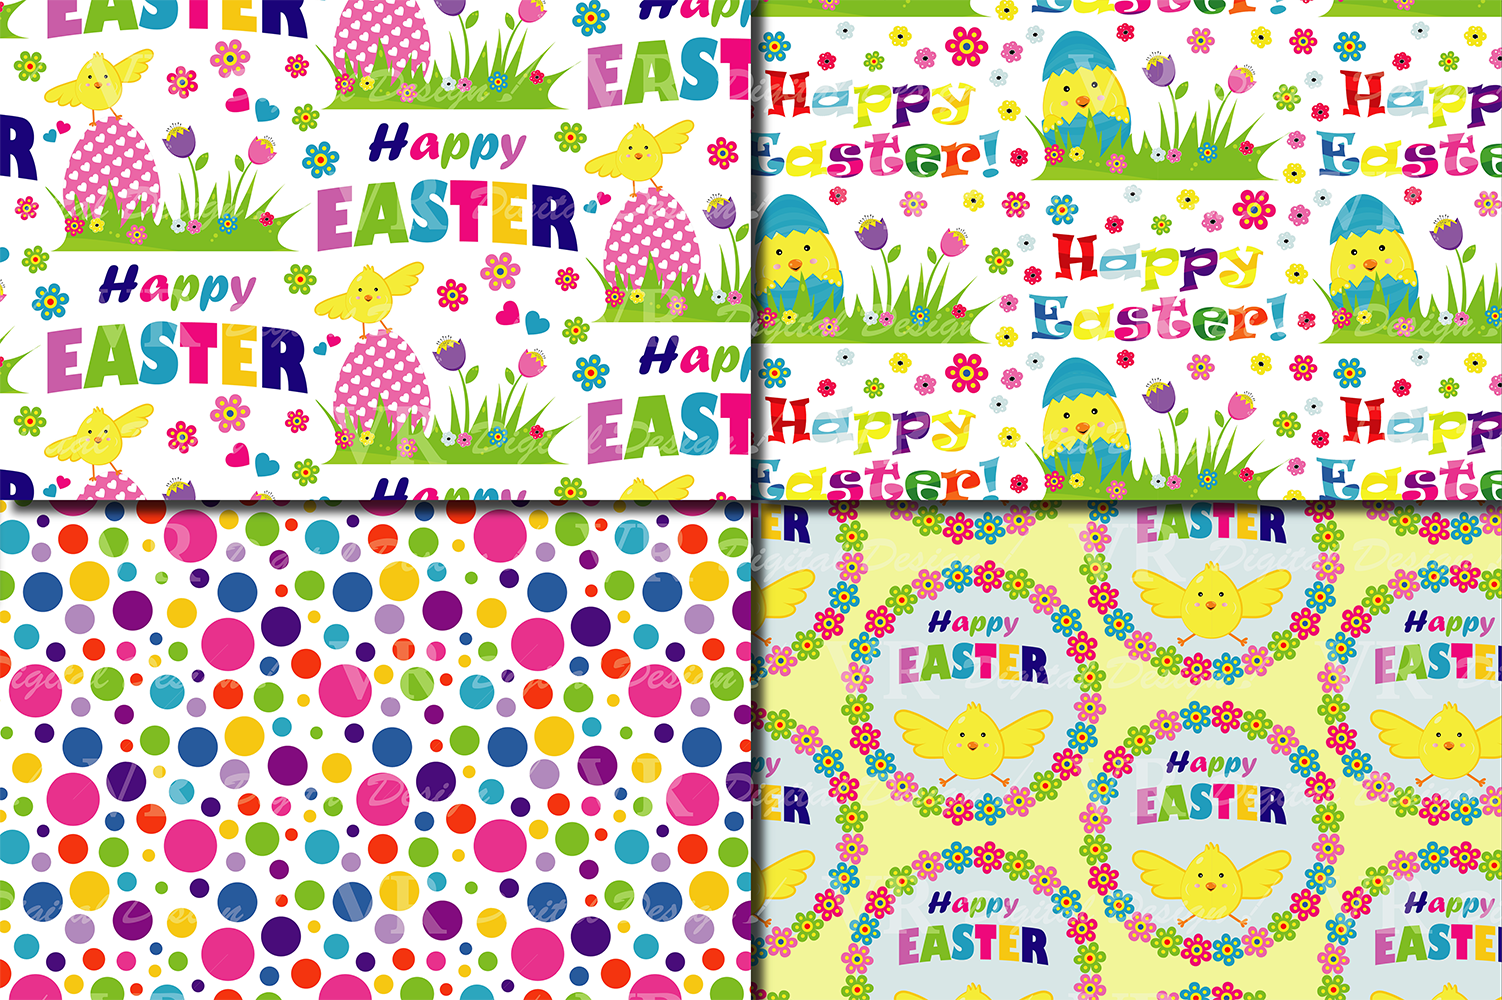 Bright Easter Digital Paper / Happy Easter chick and eggs backgrounds / Easter pattern / Scrapbooking paper example image 4